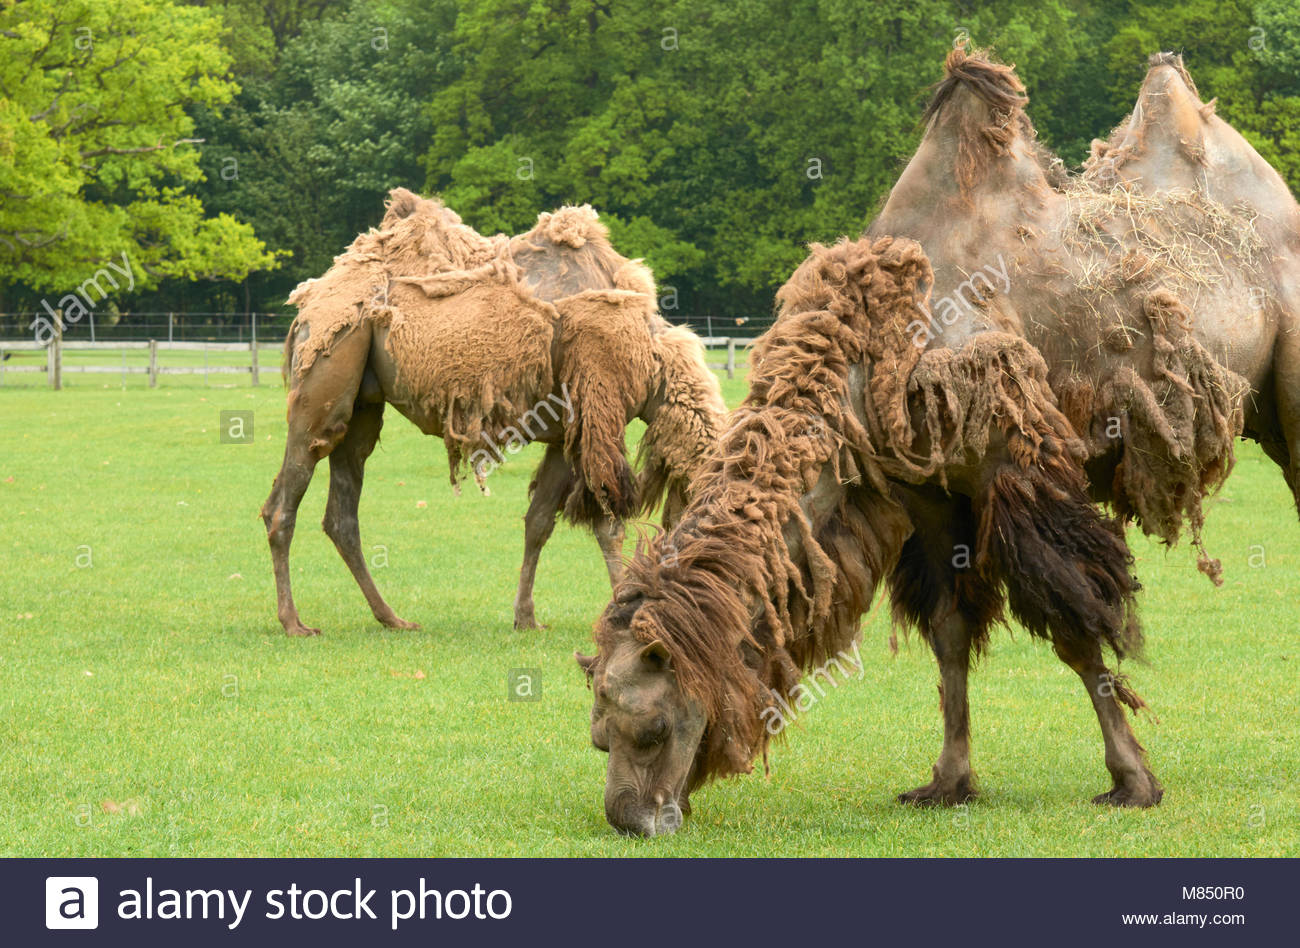 Bactrian camels camelus in the cotswold wildlife park england uk - Stock Image